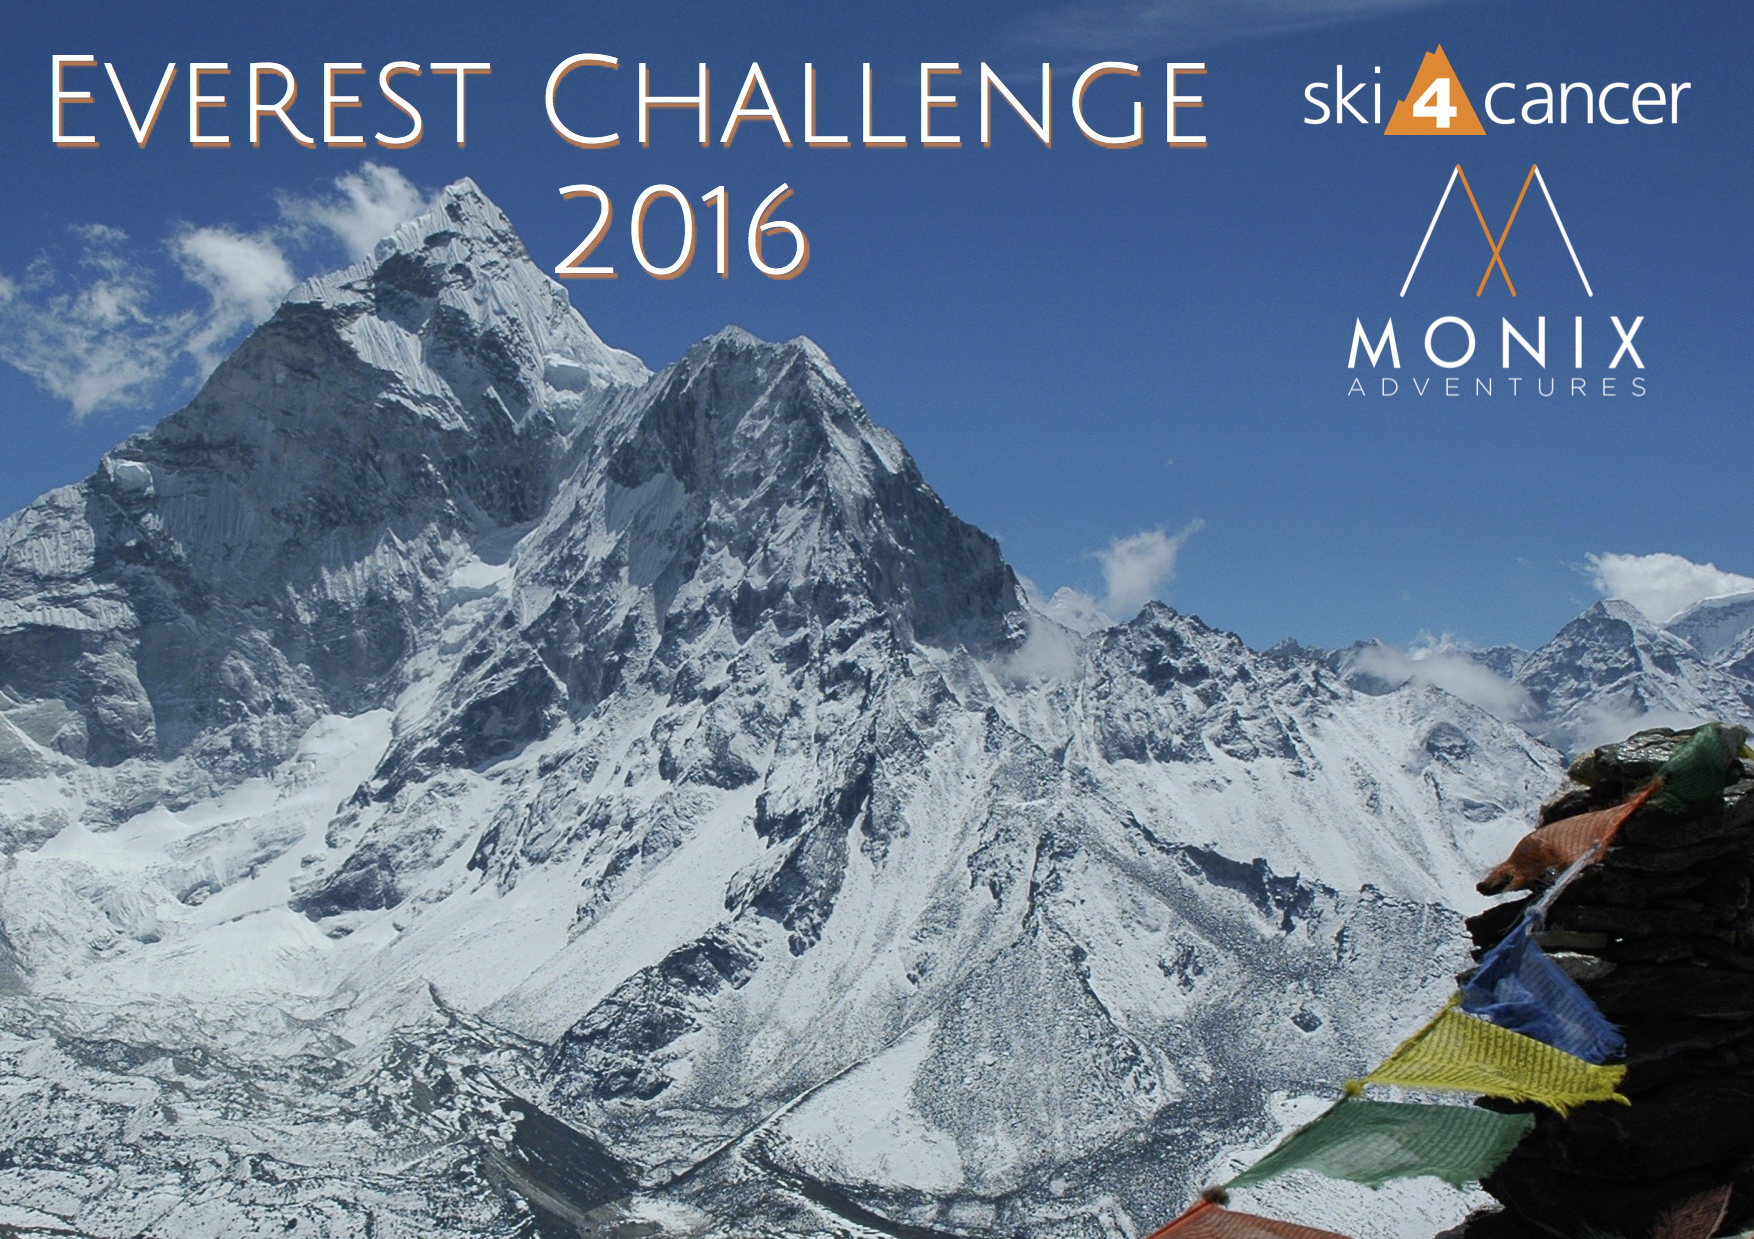 everest challenege.jpg